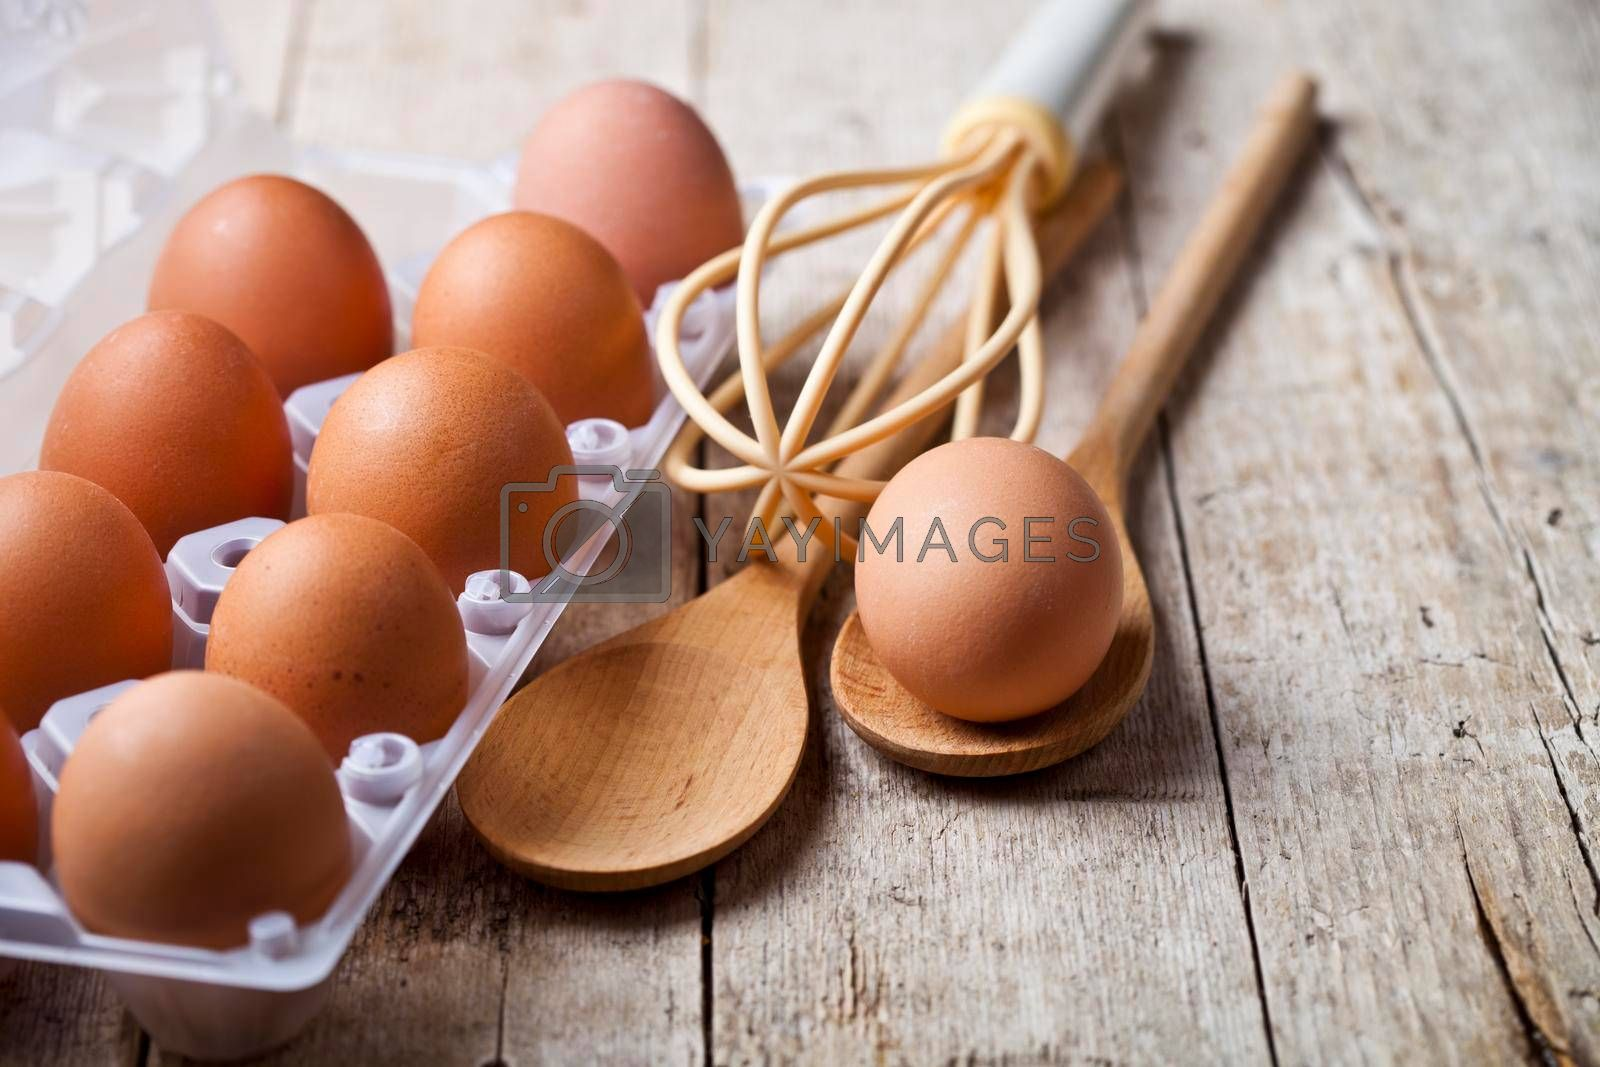 Fresh chicken eggs on plastic container and kitchen utensil on rustic wooden table background. Bakery tools with copy space.